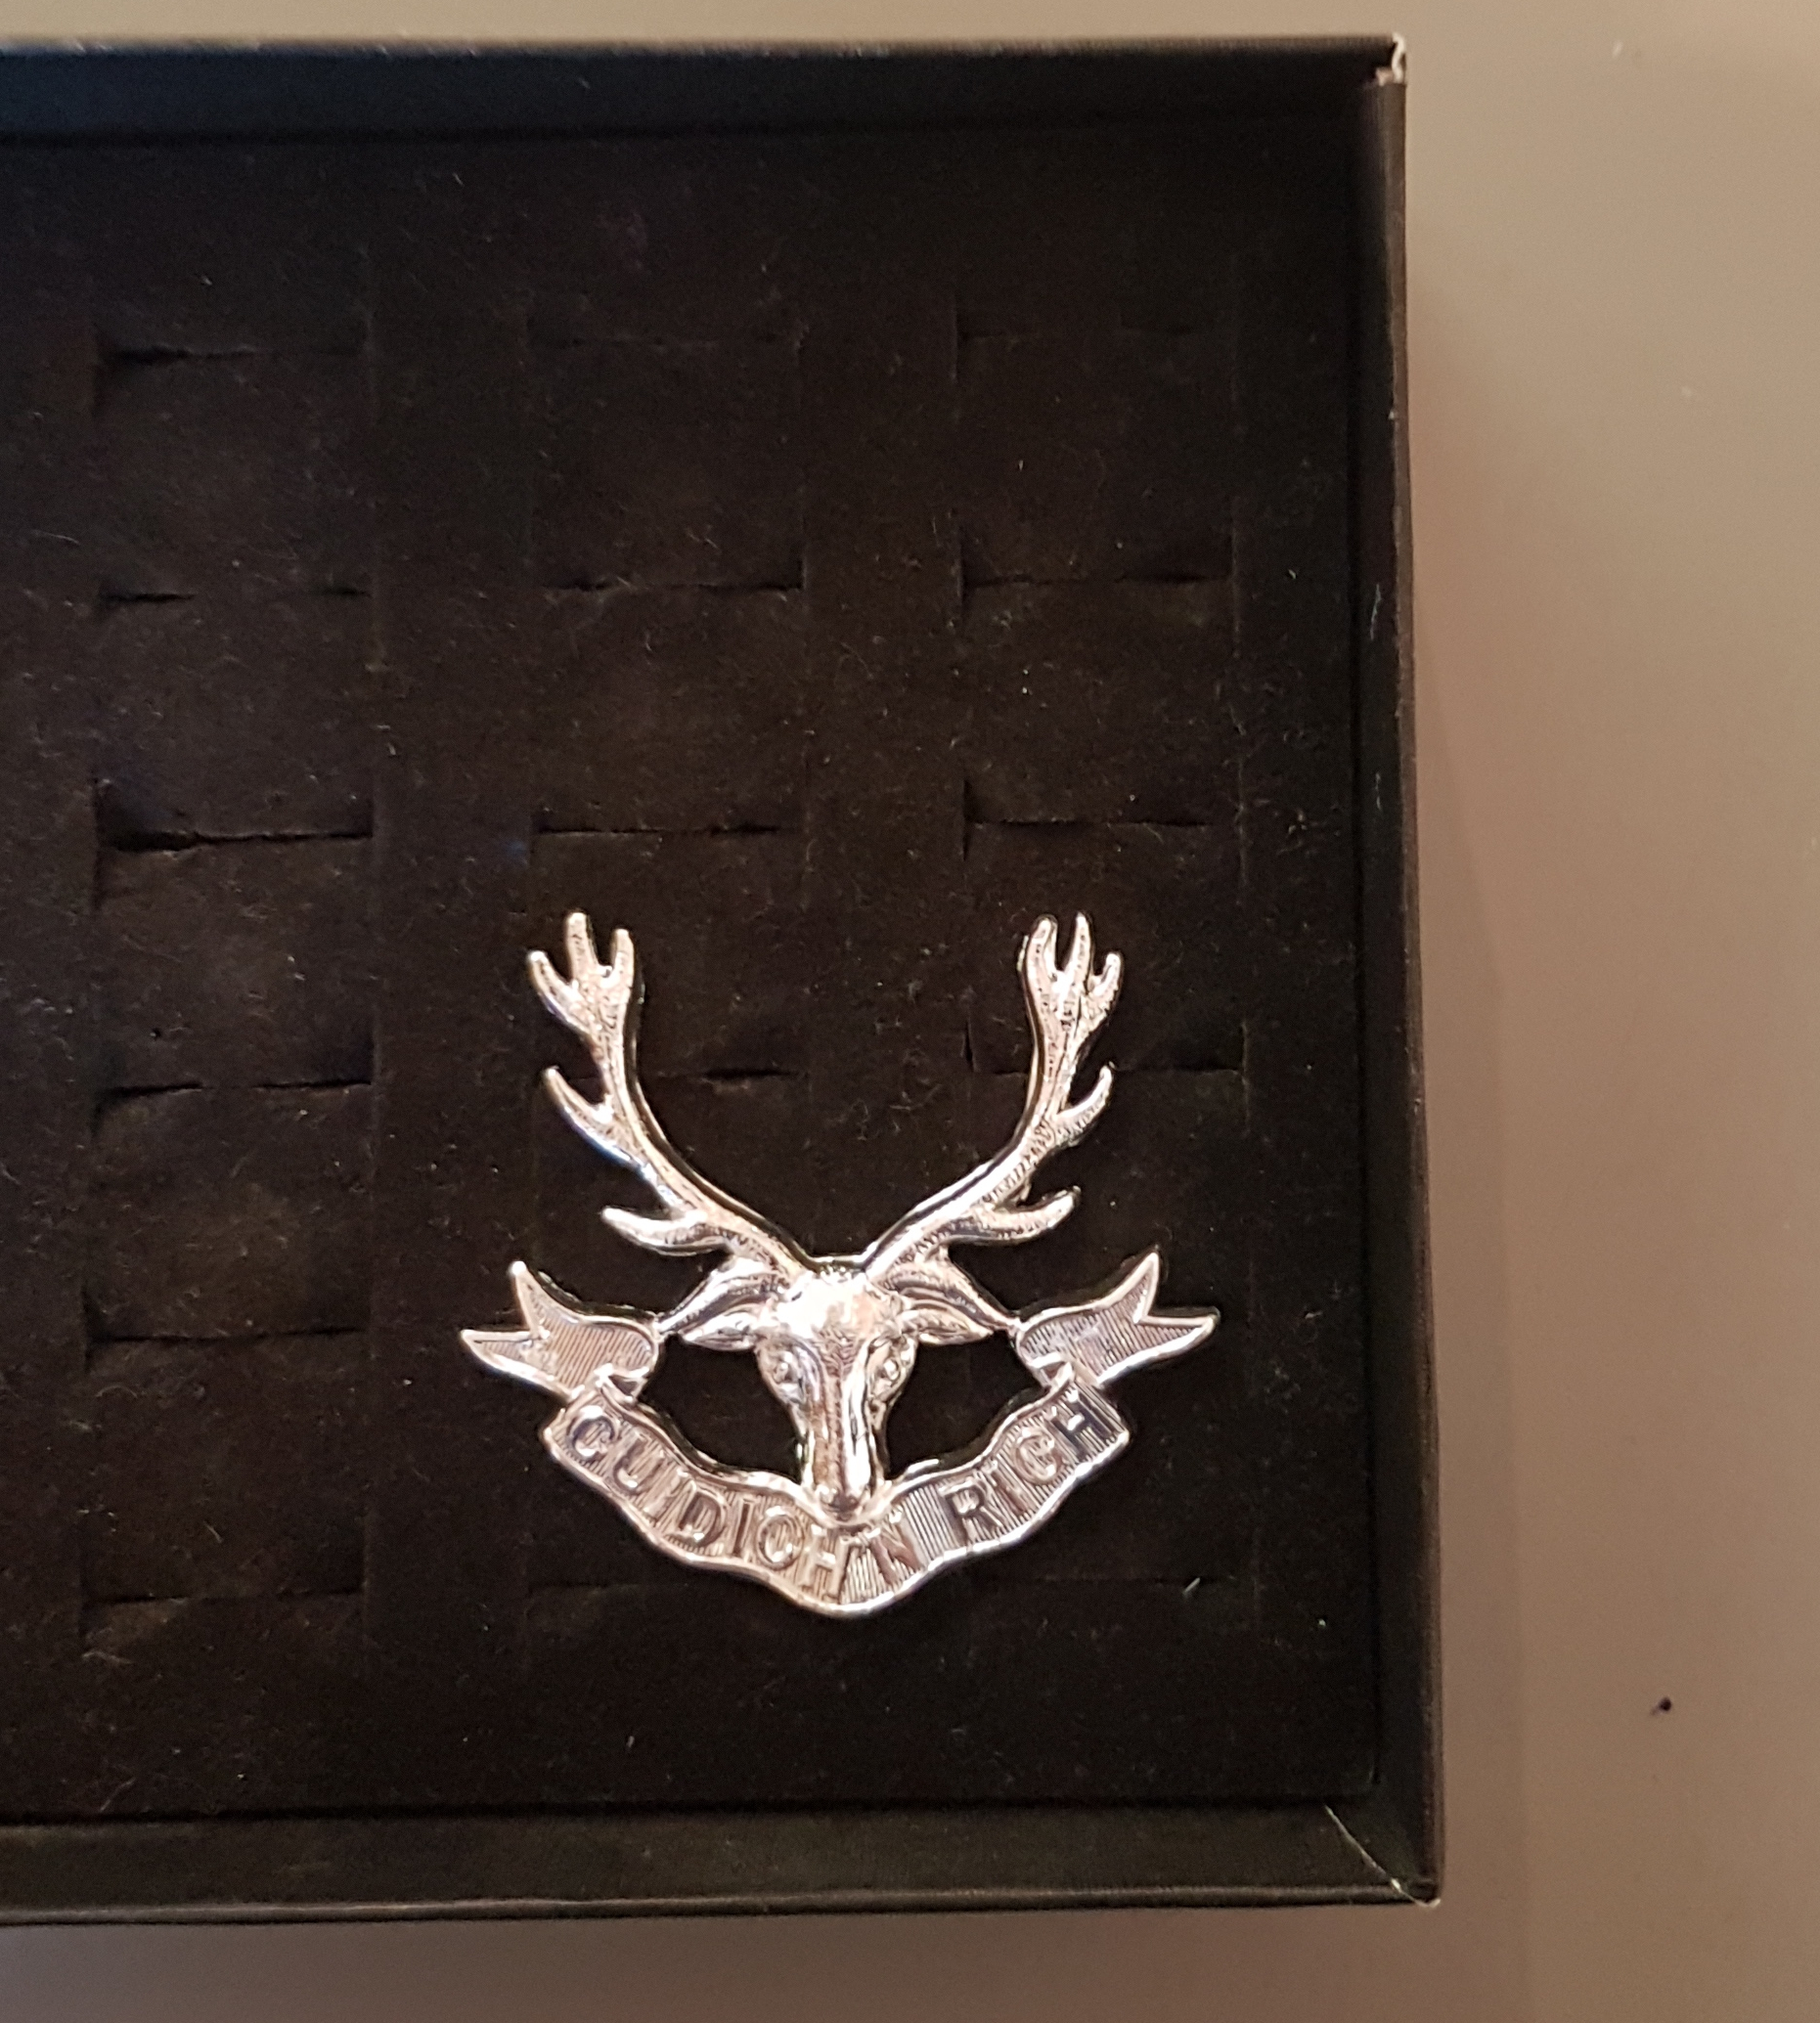 Seaforth Highlanders Cap Badge